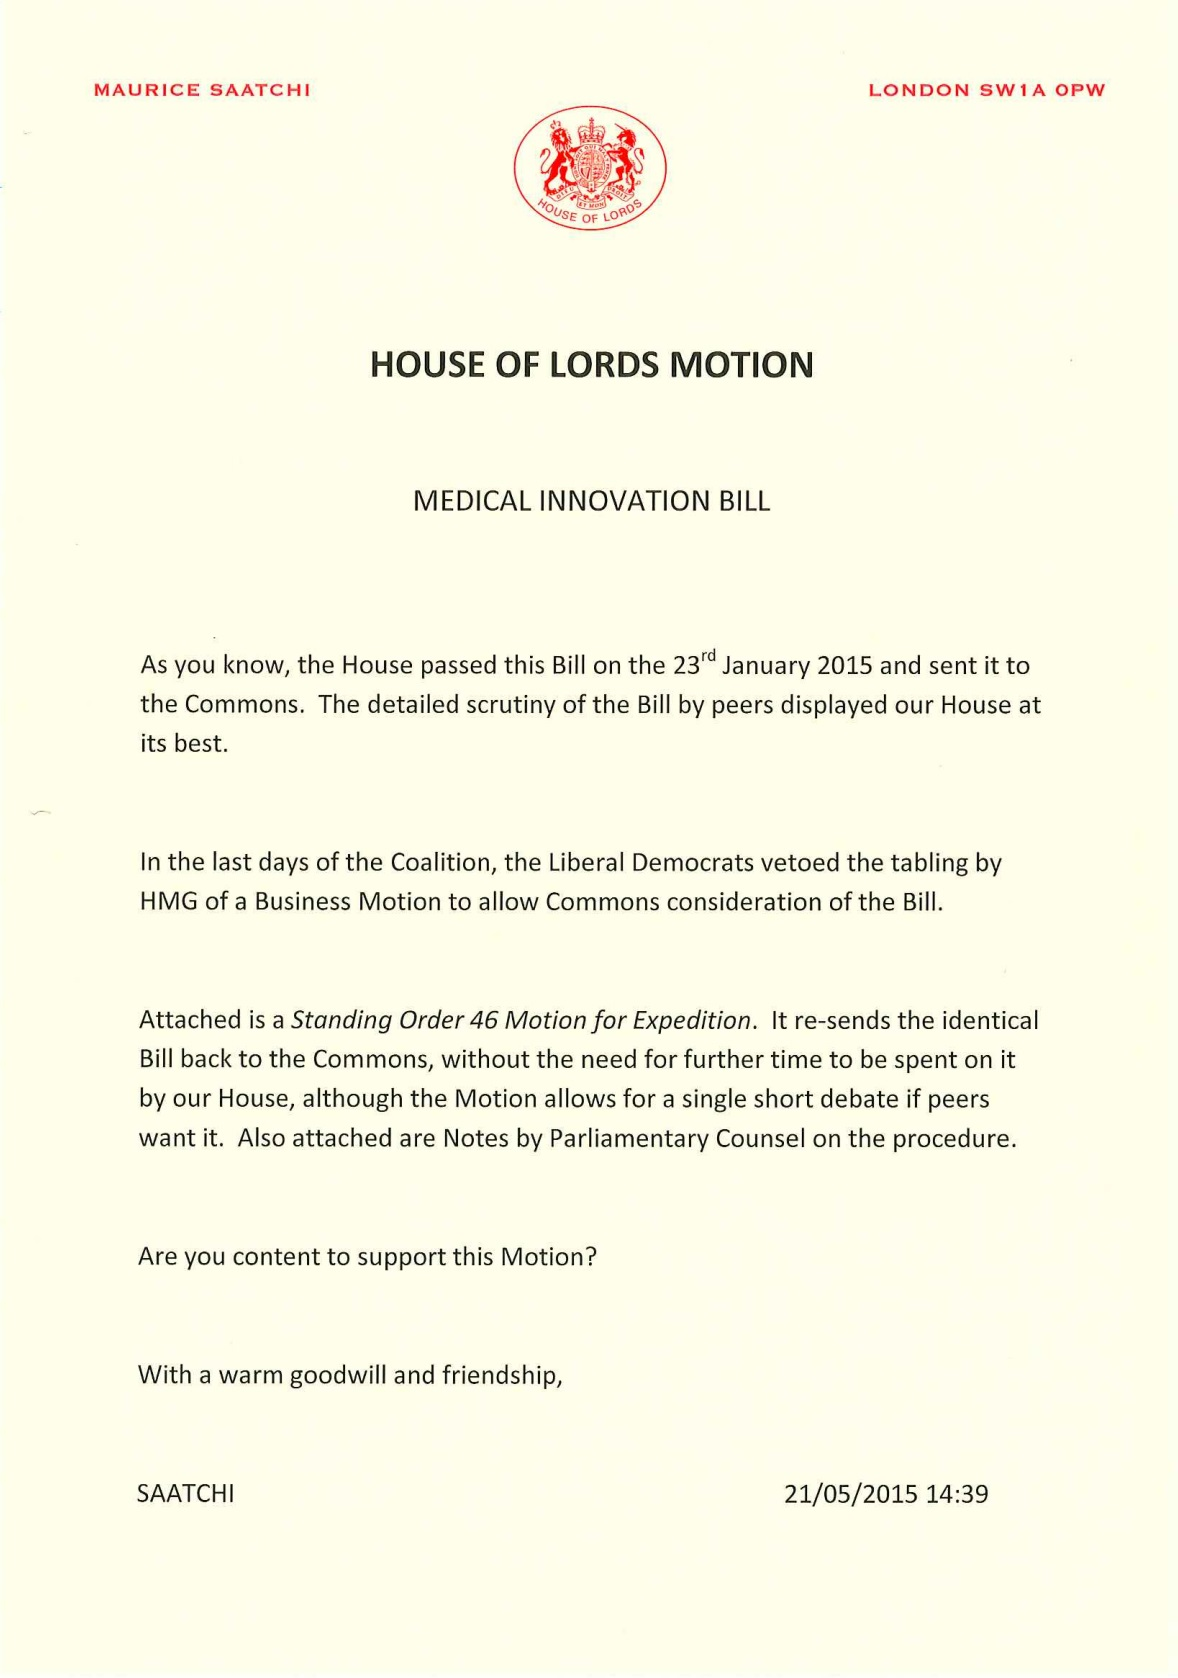 Medical Innovation Bill